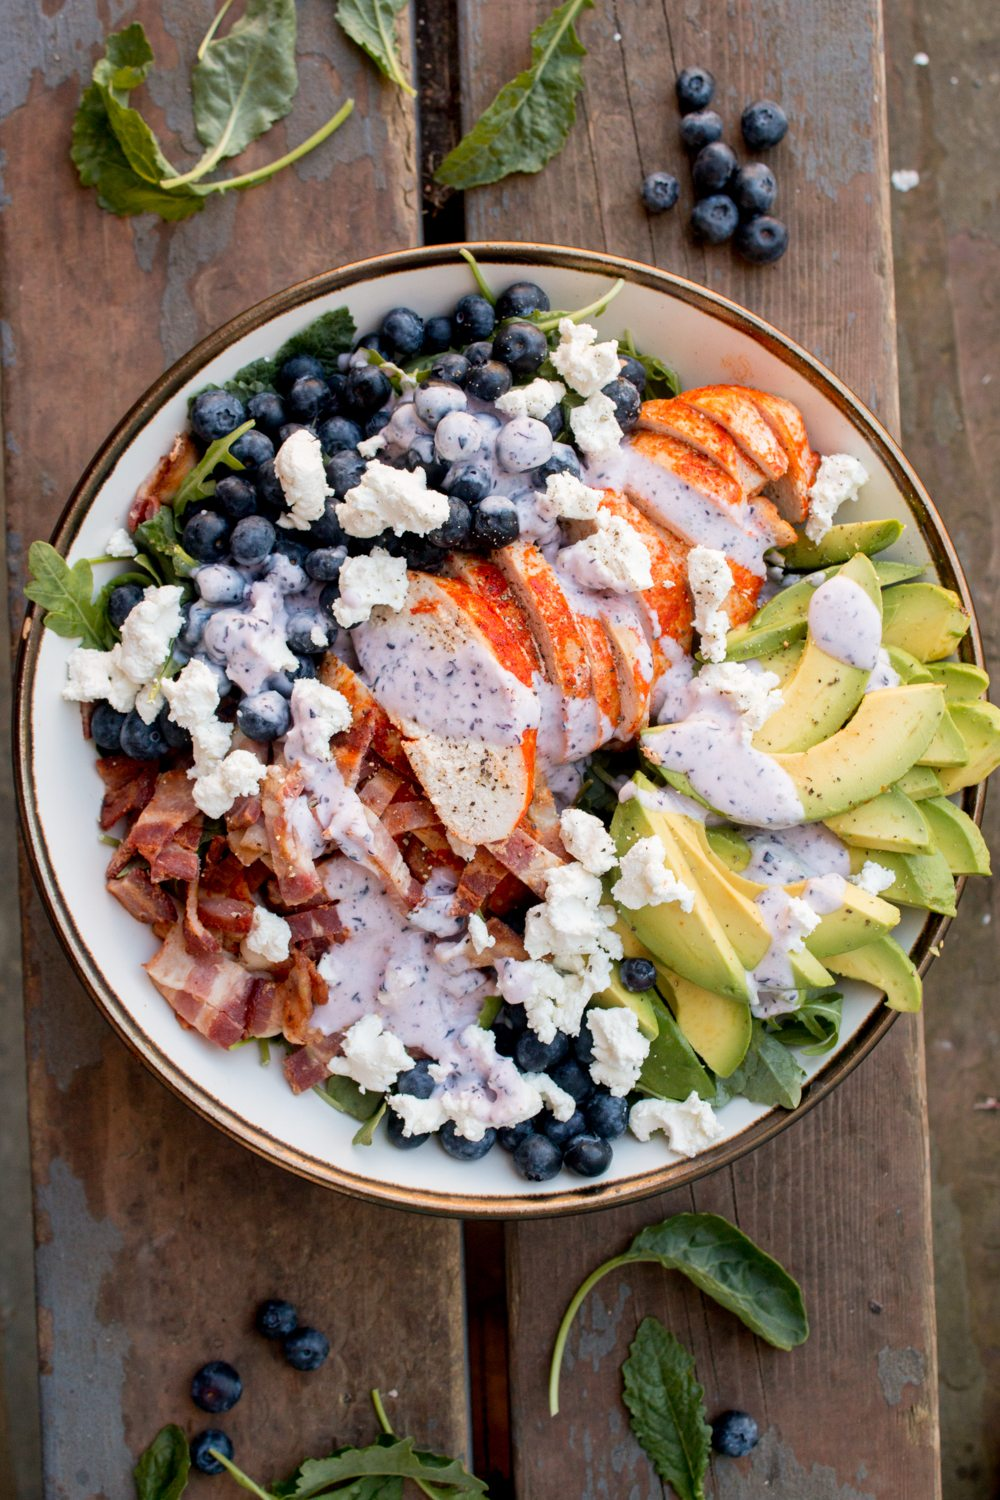 Roast Chicken Salad with Avocado and Blueberries